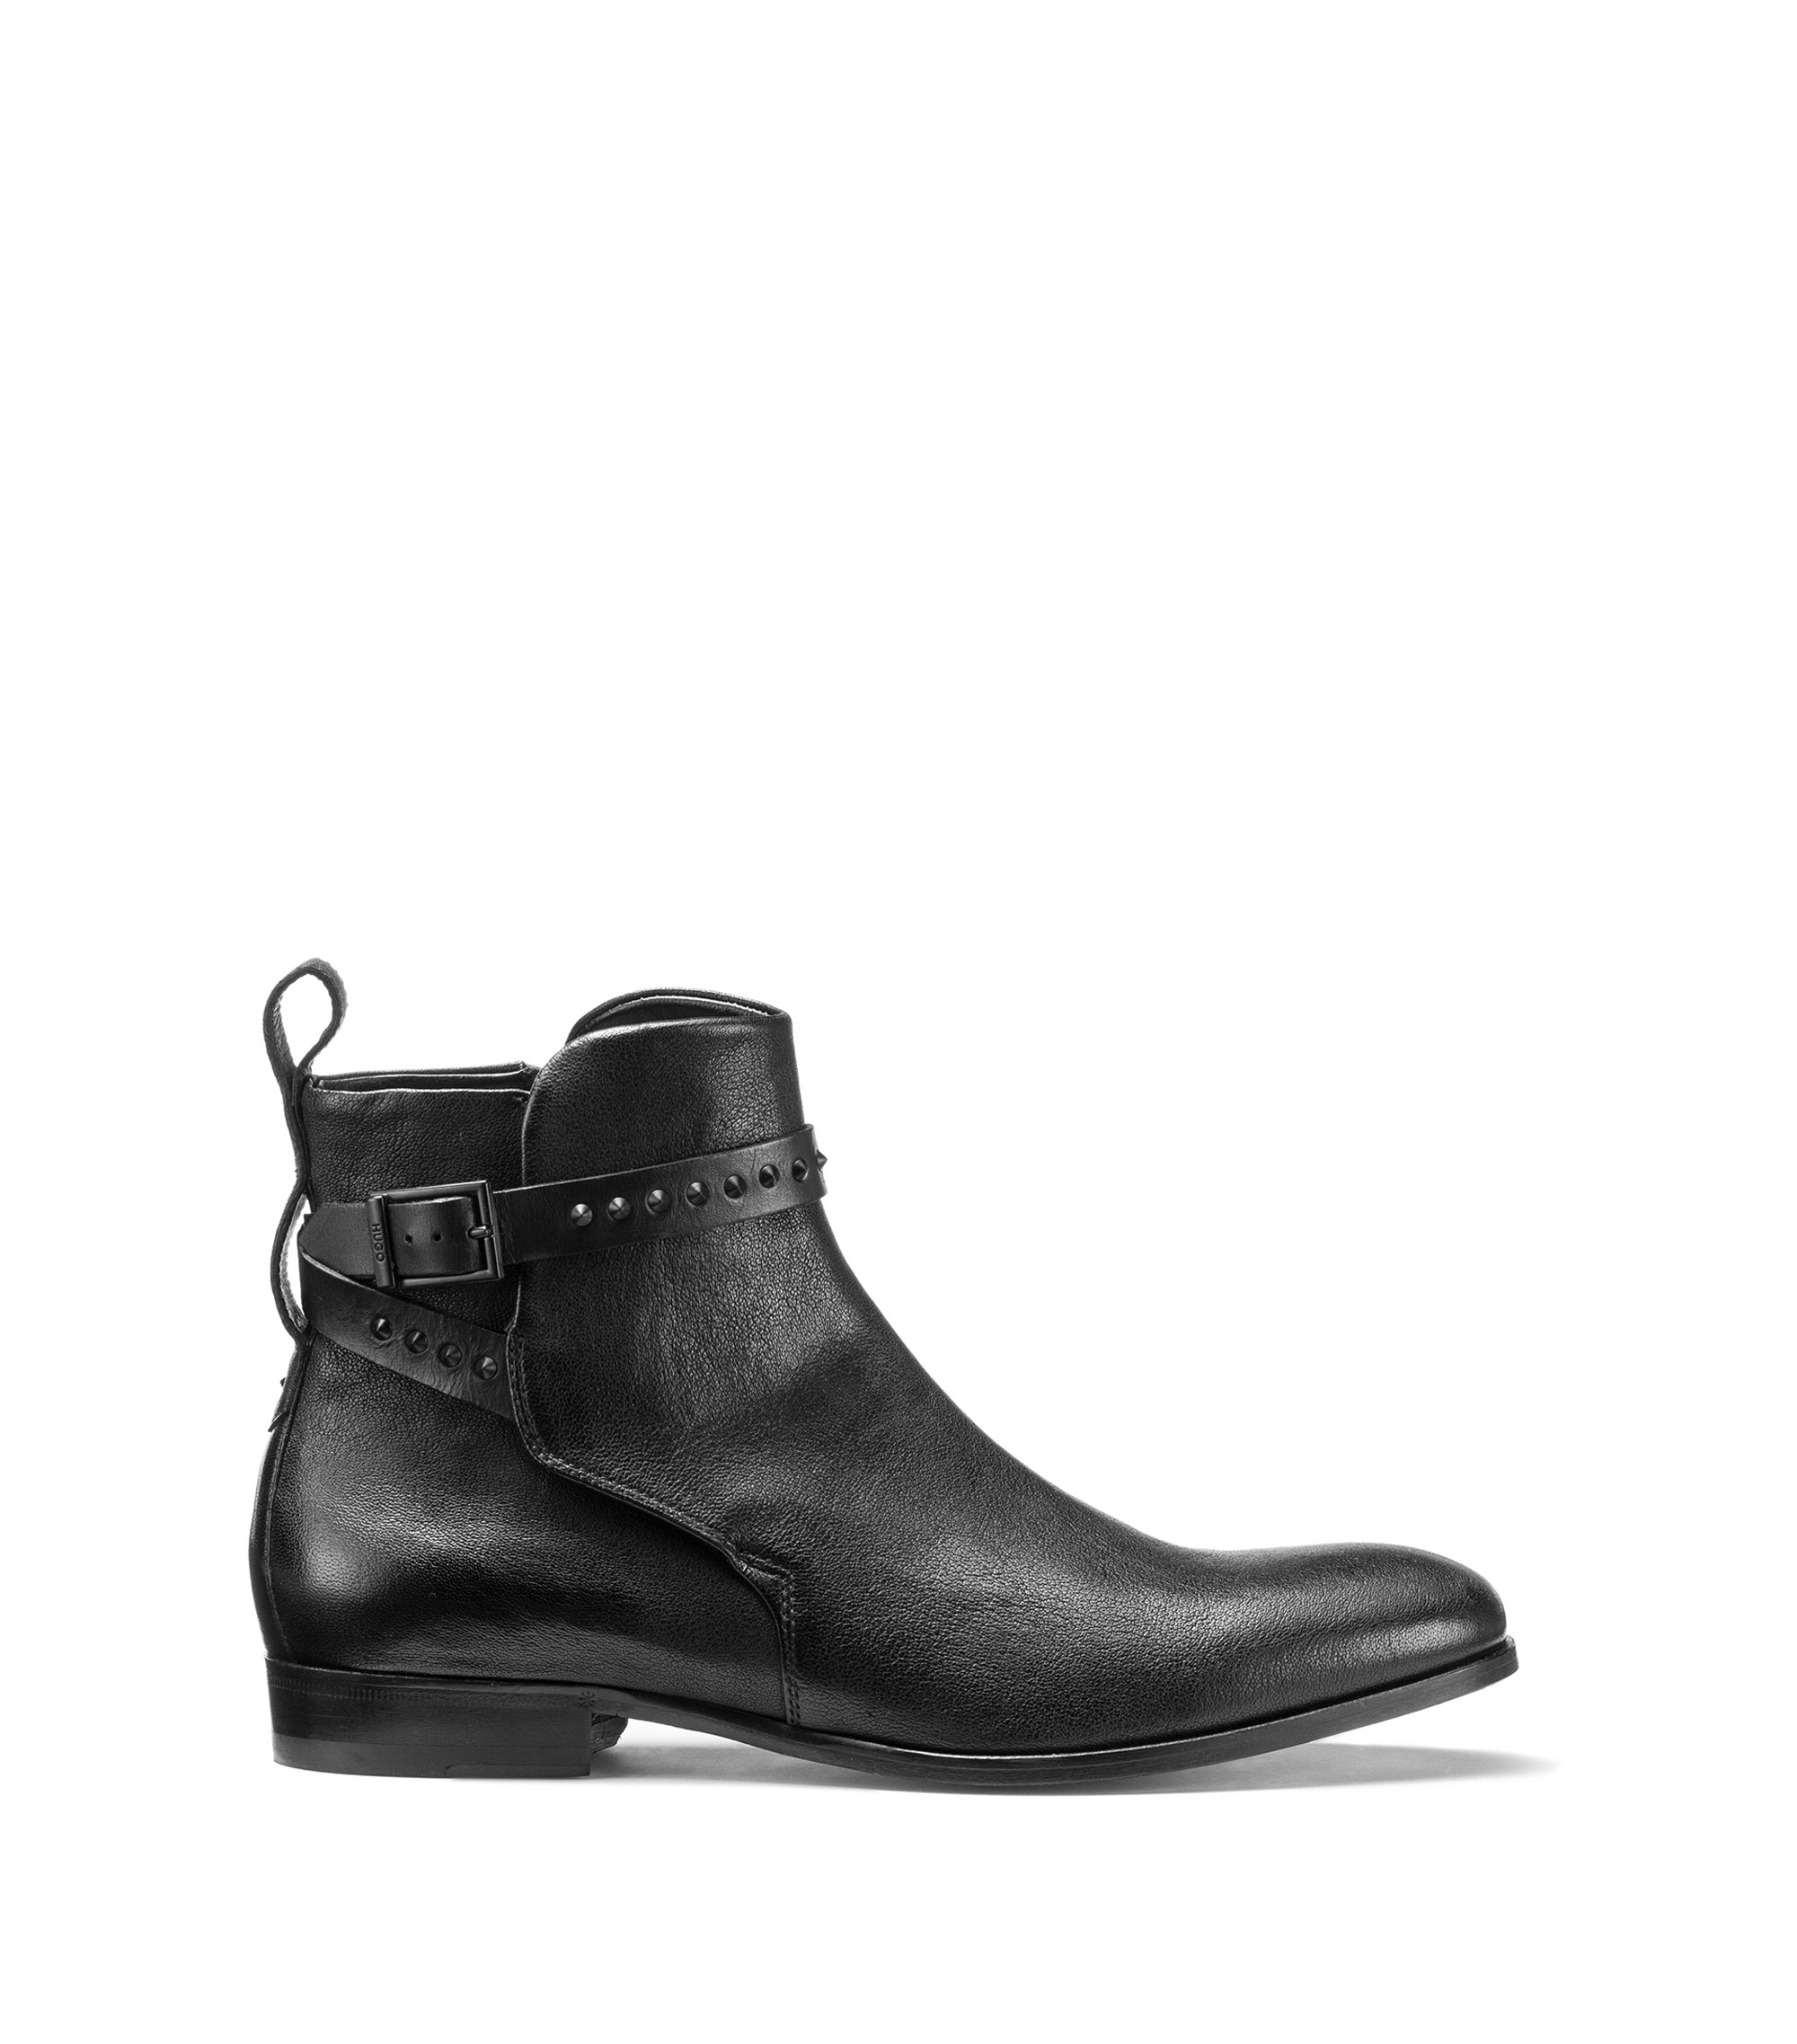 Jodhpur-style Chelsea boots in tumbled leather, Black